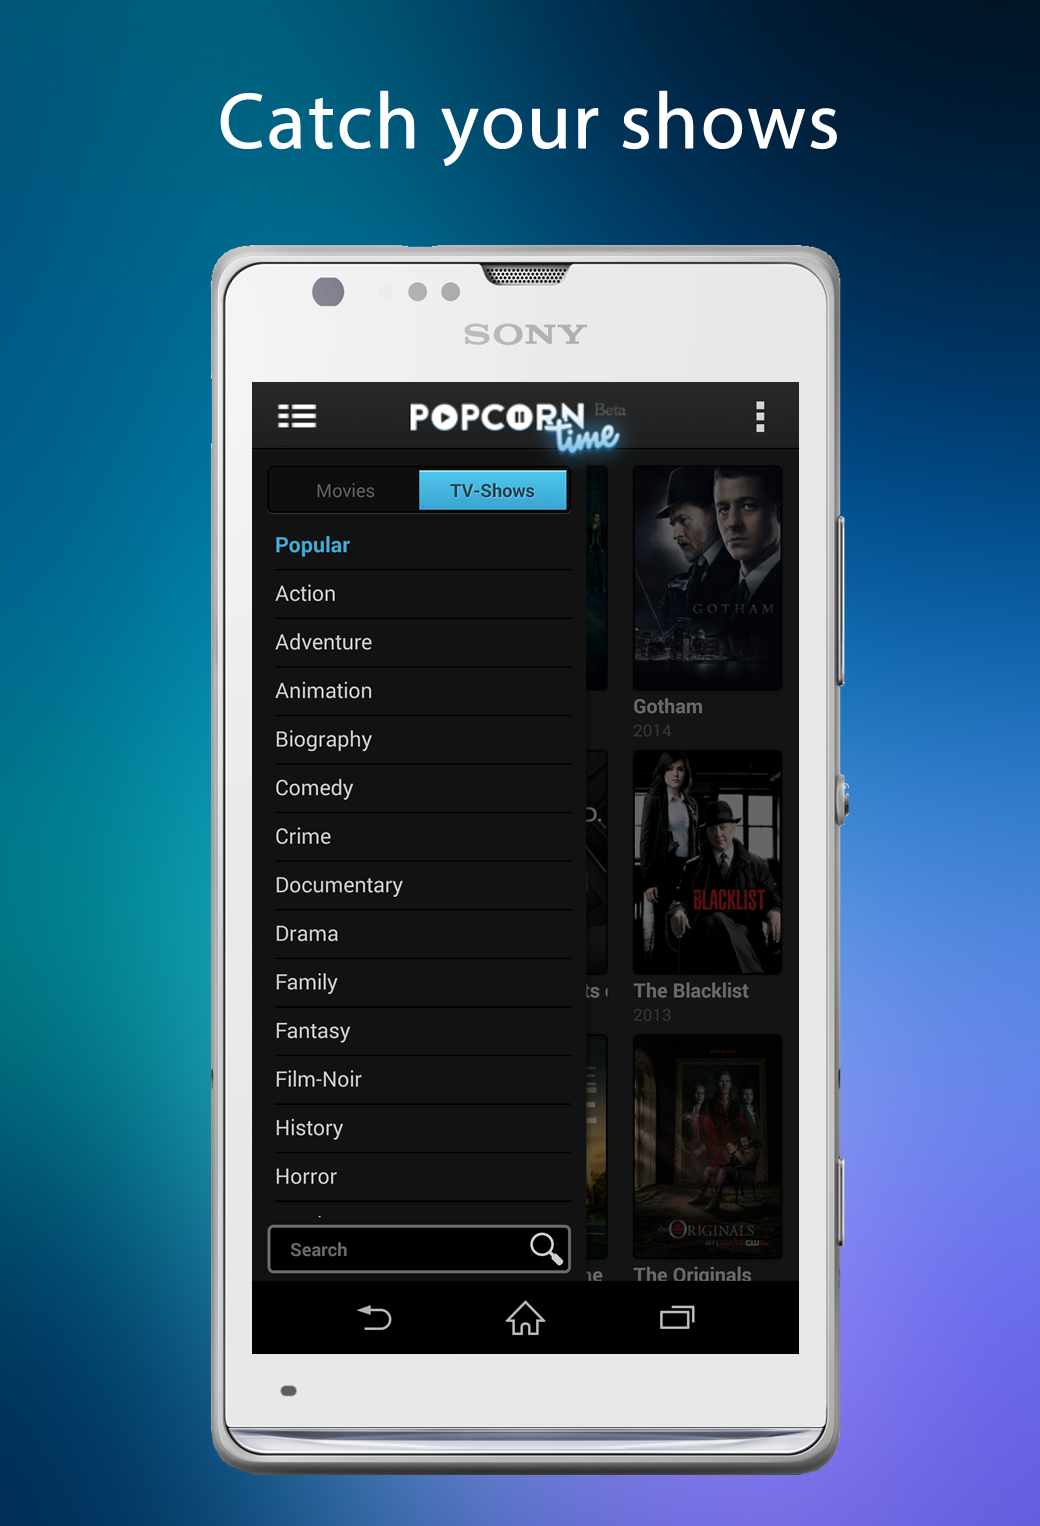 Catch all your favorite shows. Popcorn time will be